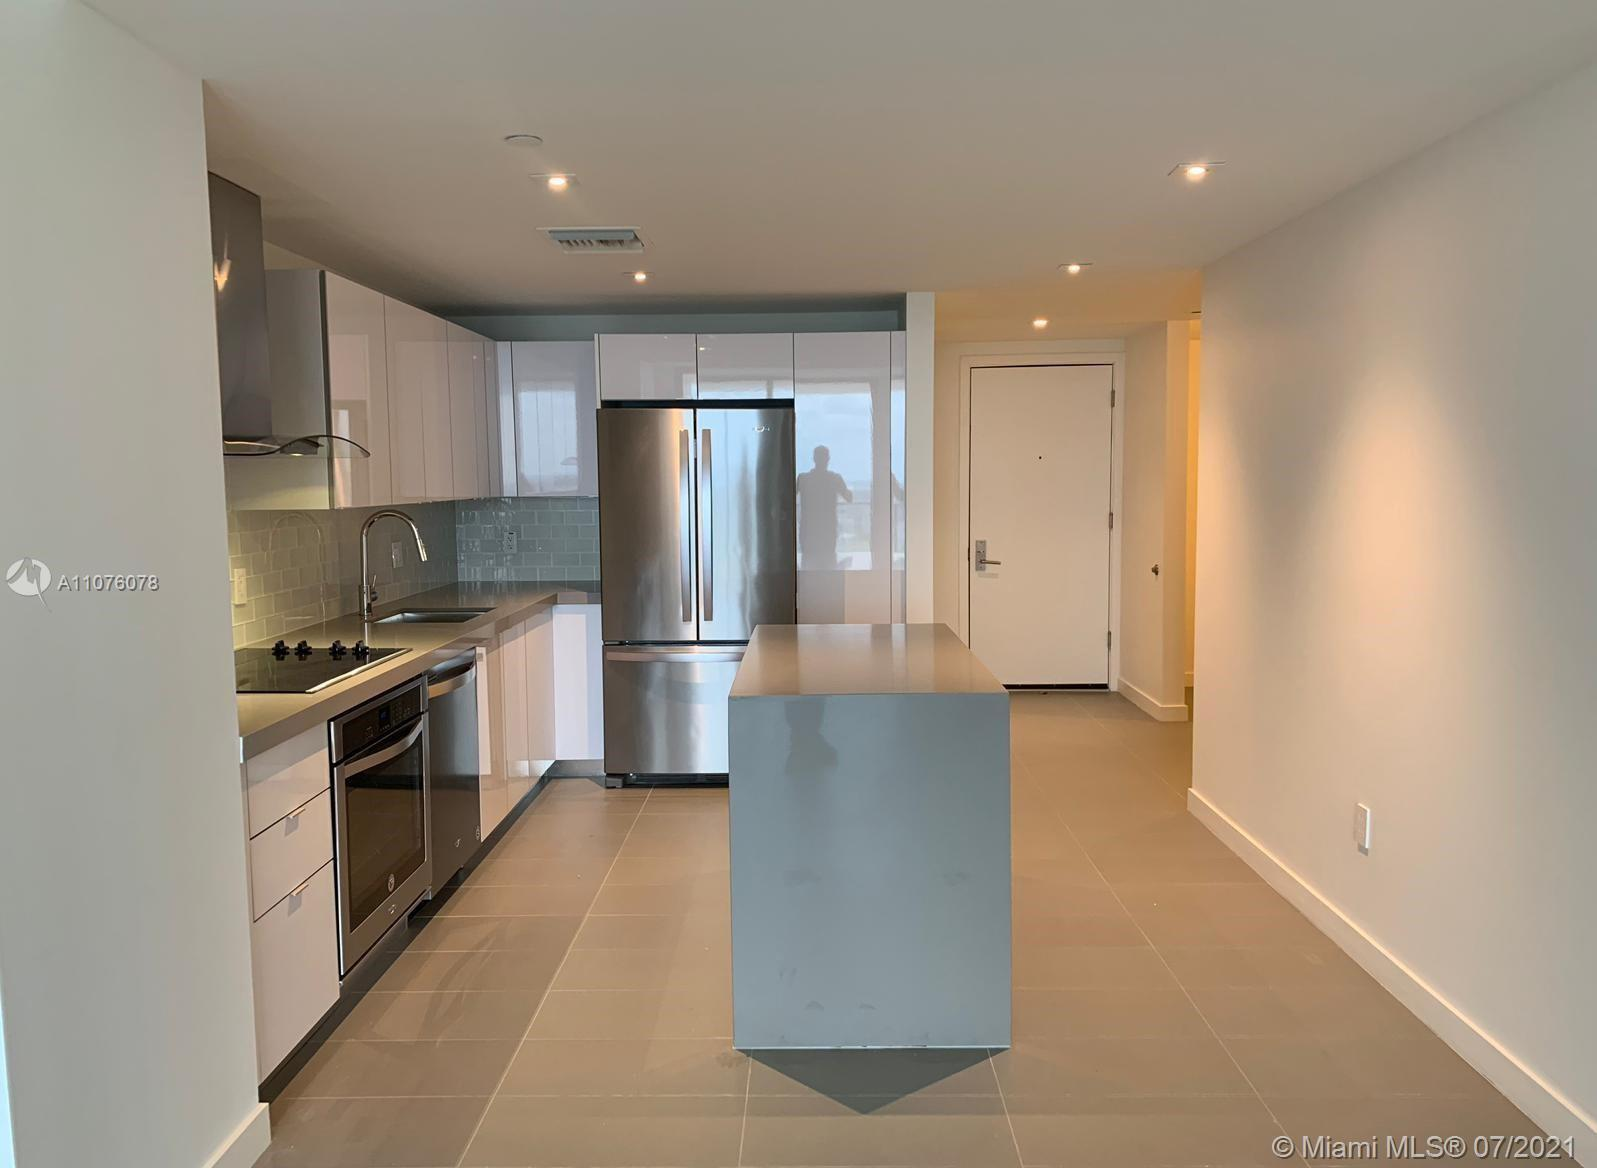 Very spacious 1 bed 1.5 baths with a den on the last floor in the A&E District. Incredible sunset vi